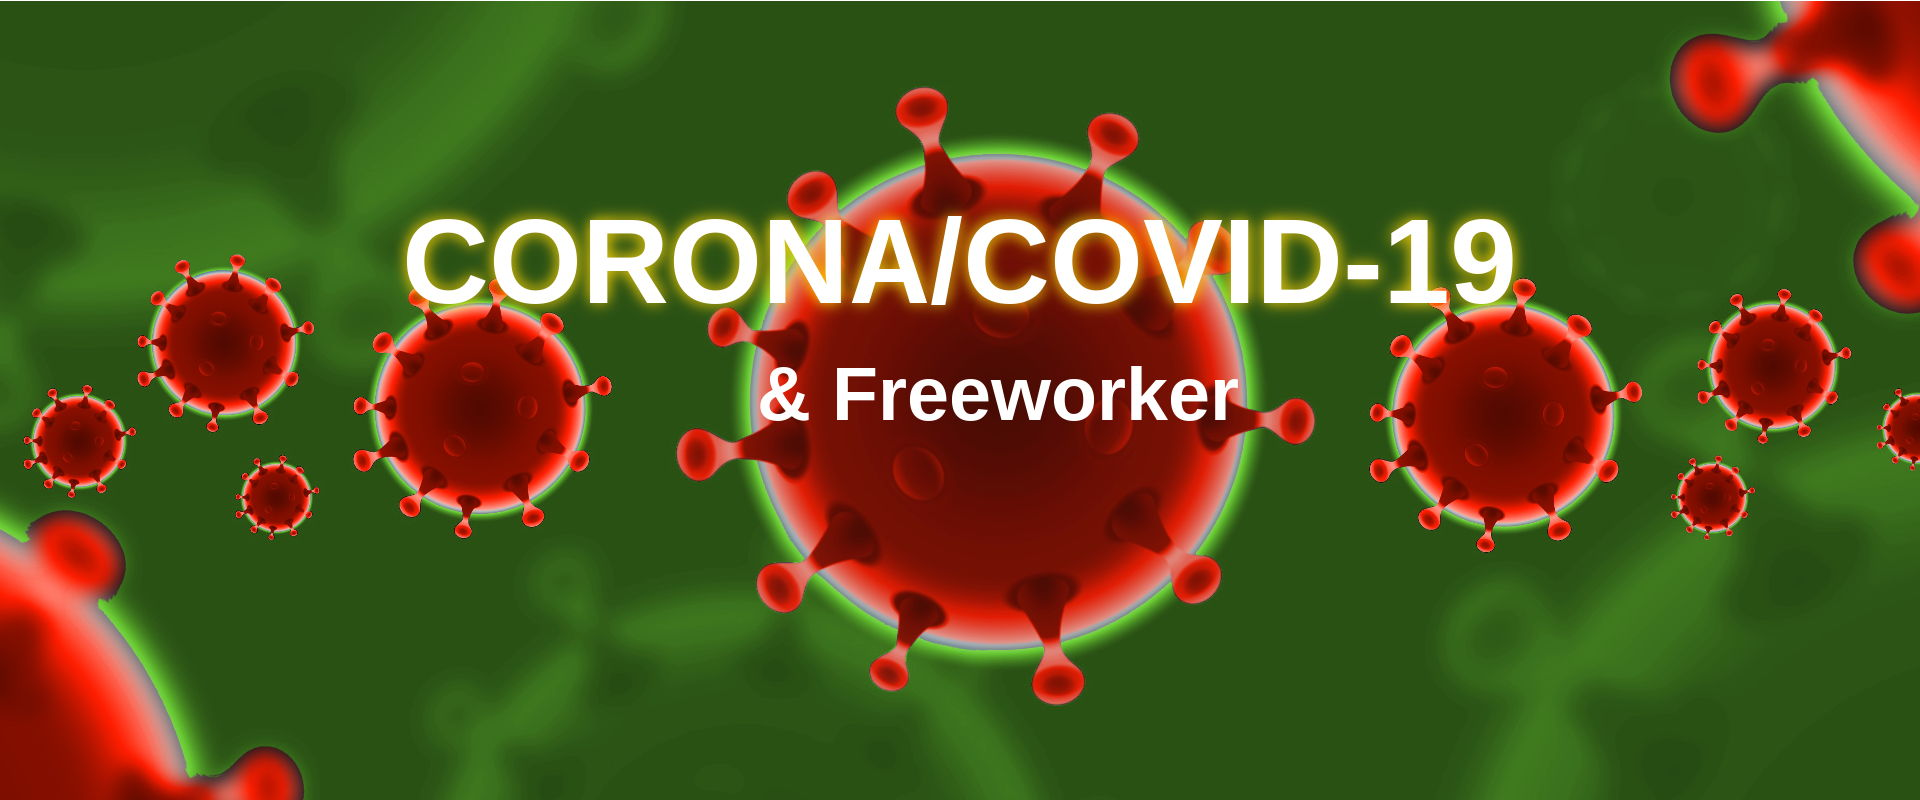 Permalink to: Information on the Corona pandemic and the current consequences for Freeworker